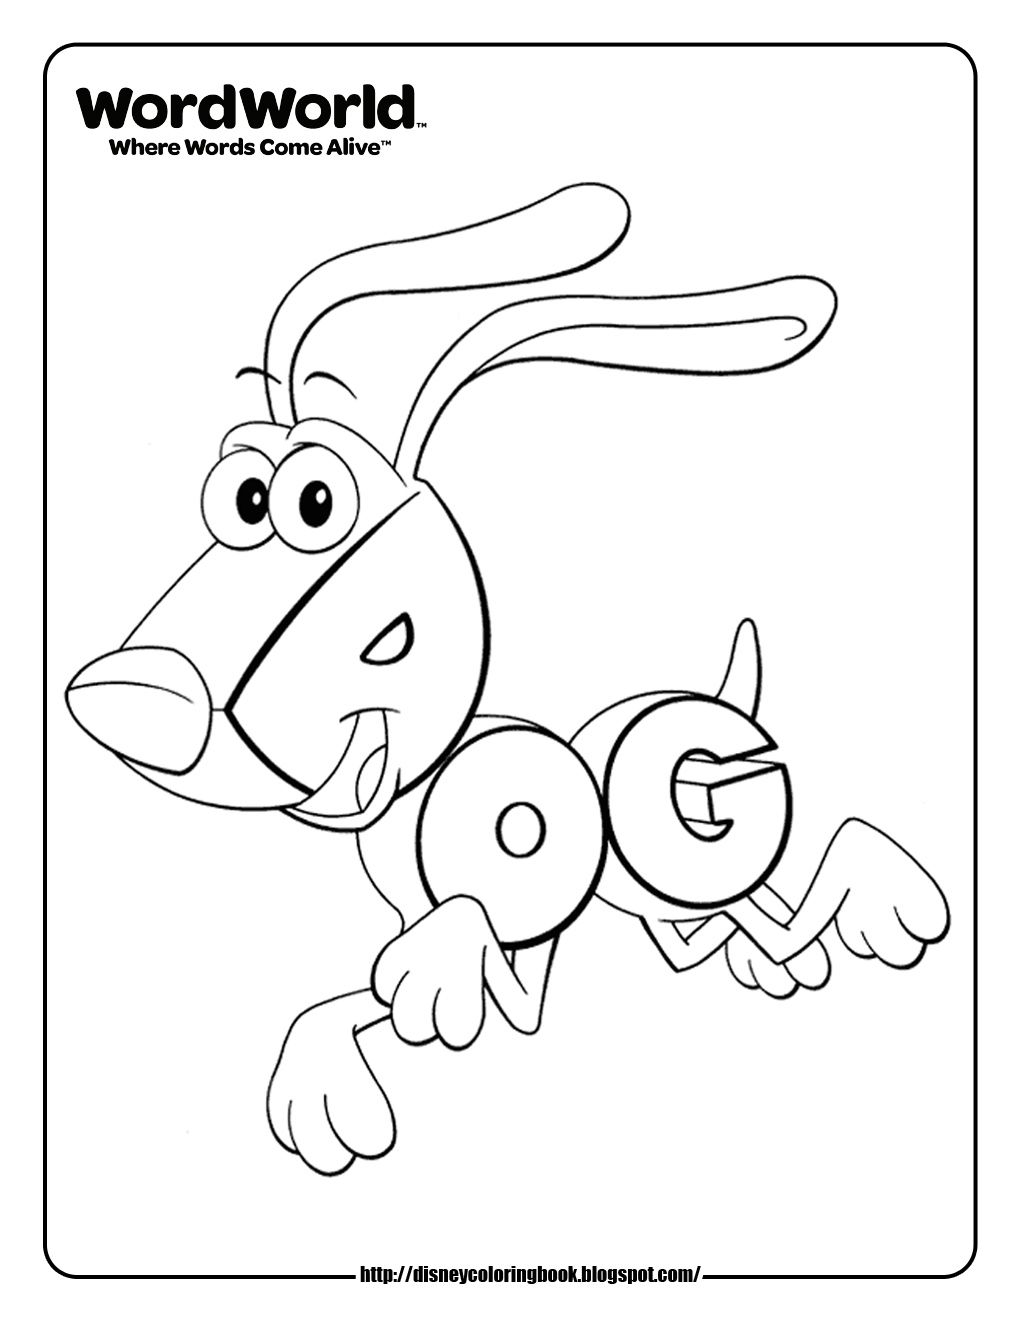 word world dog coloring pages I